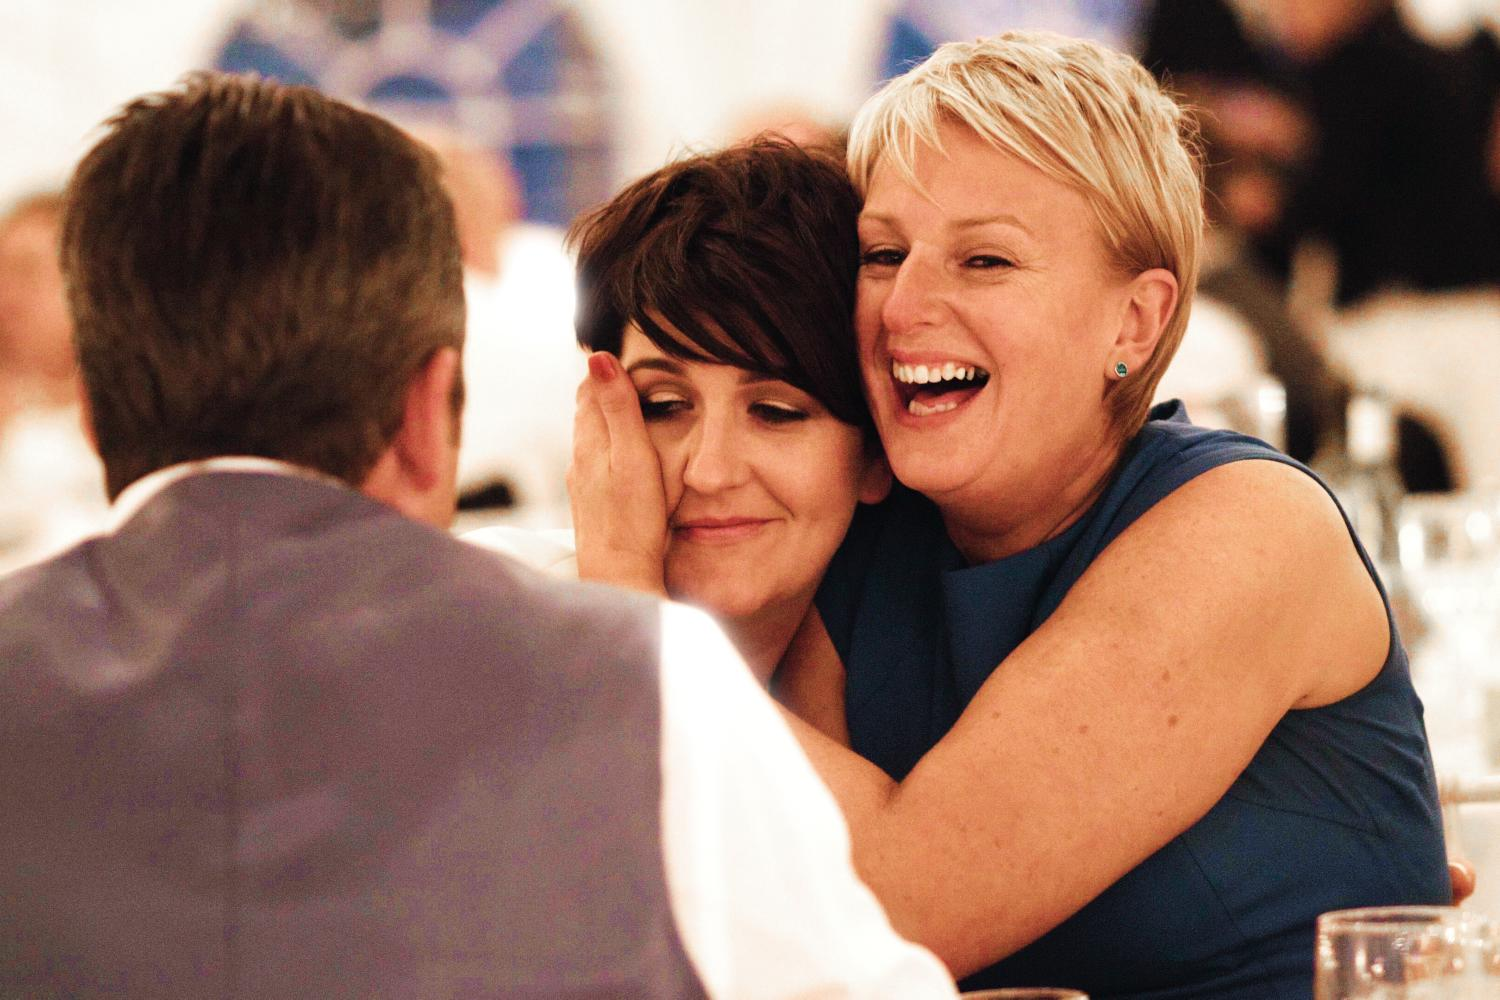 Two women hug and laugh at a wedding